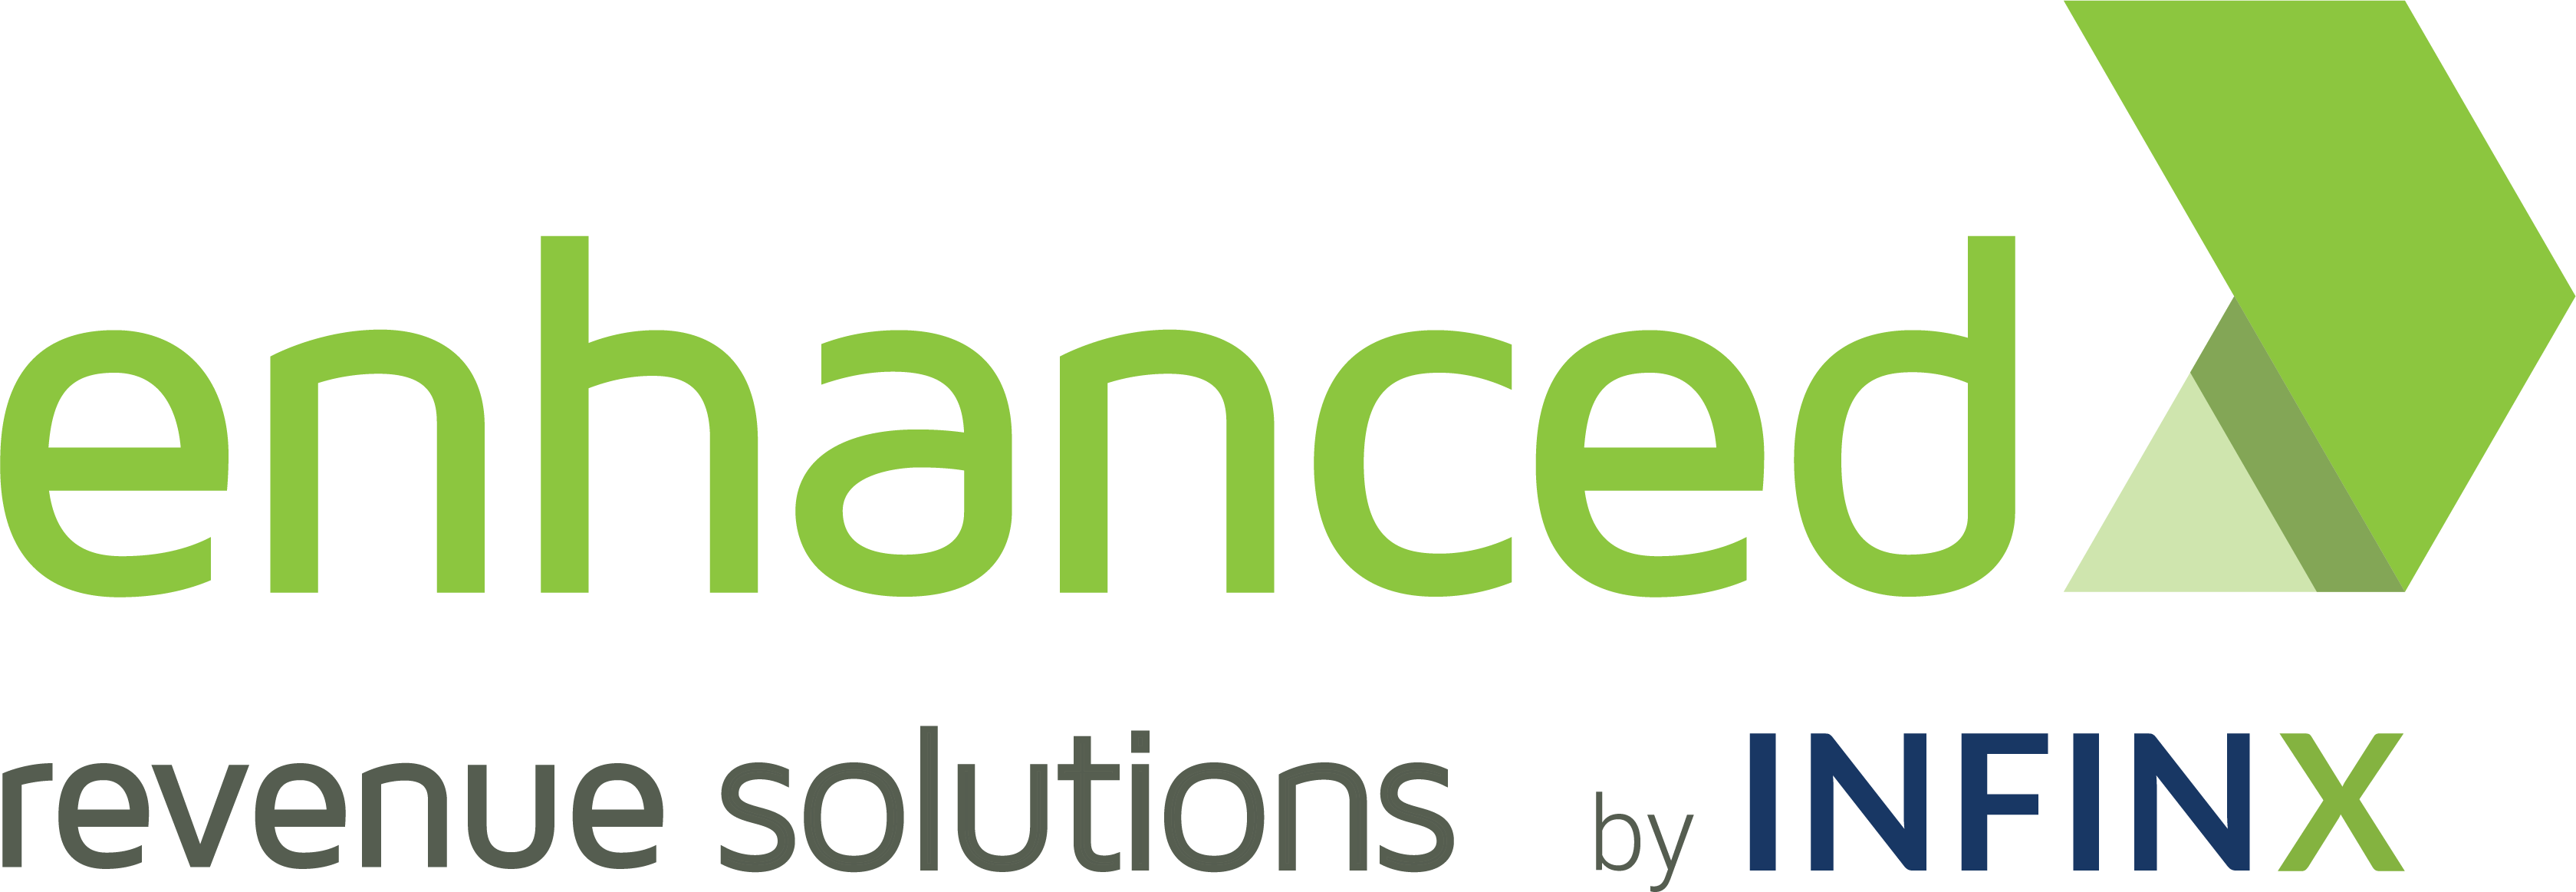 Enhanced Revenue Solutions Logo